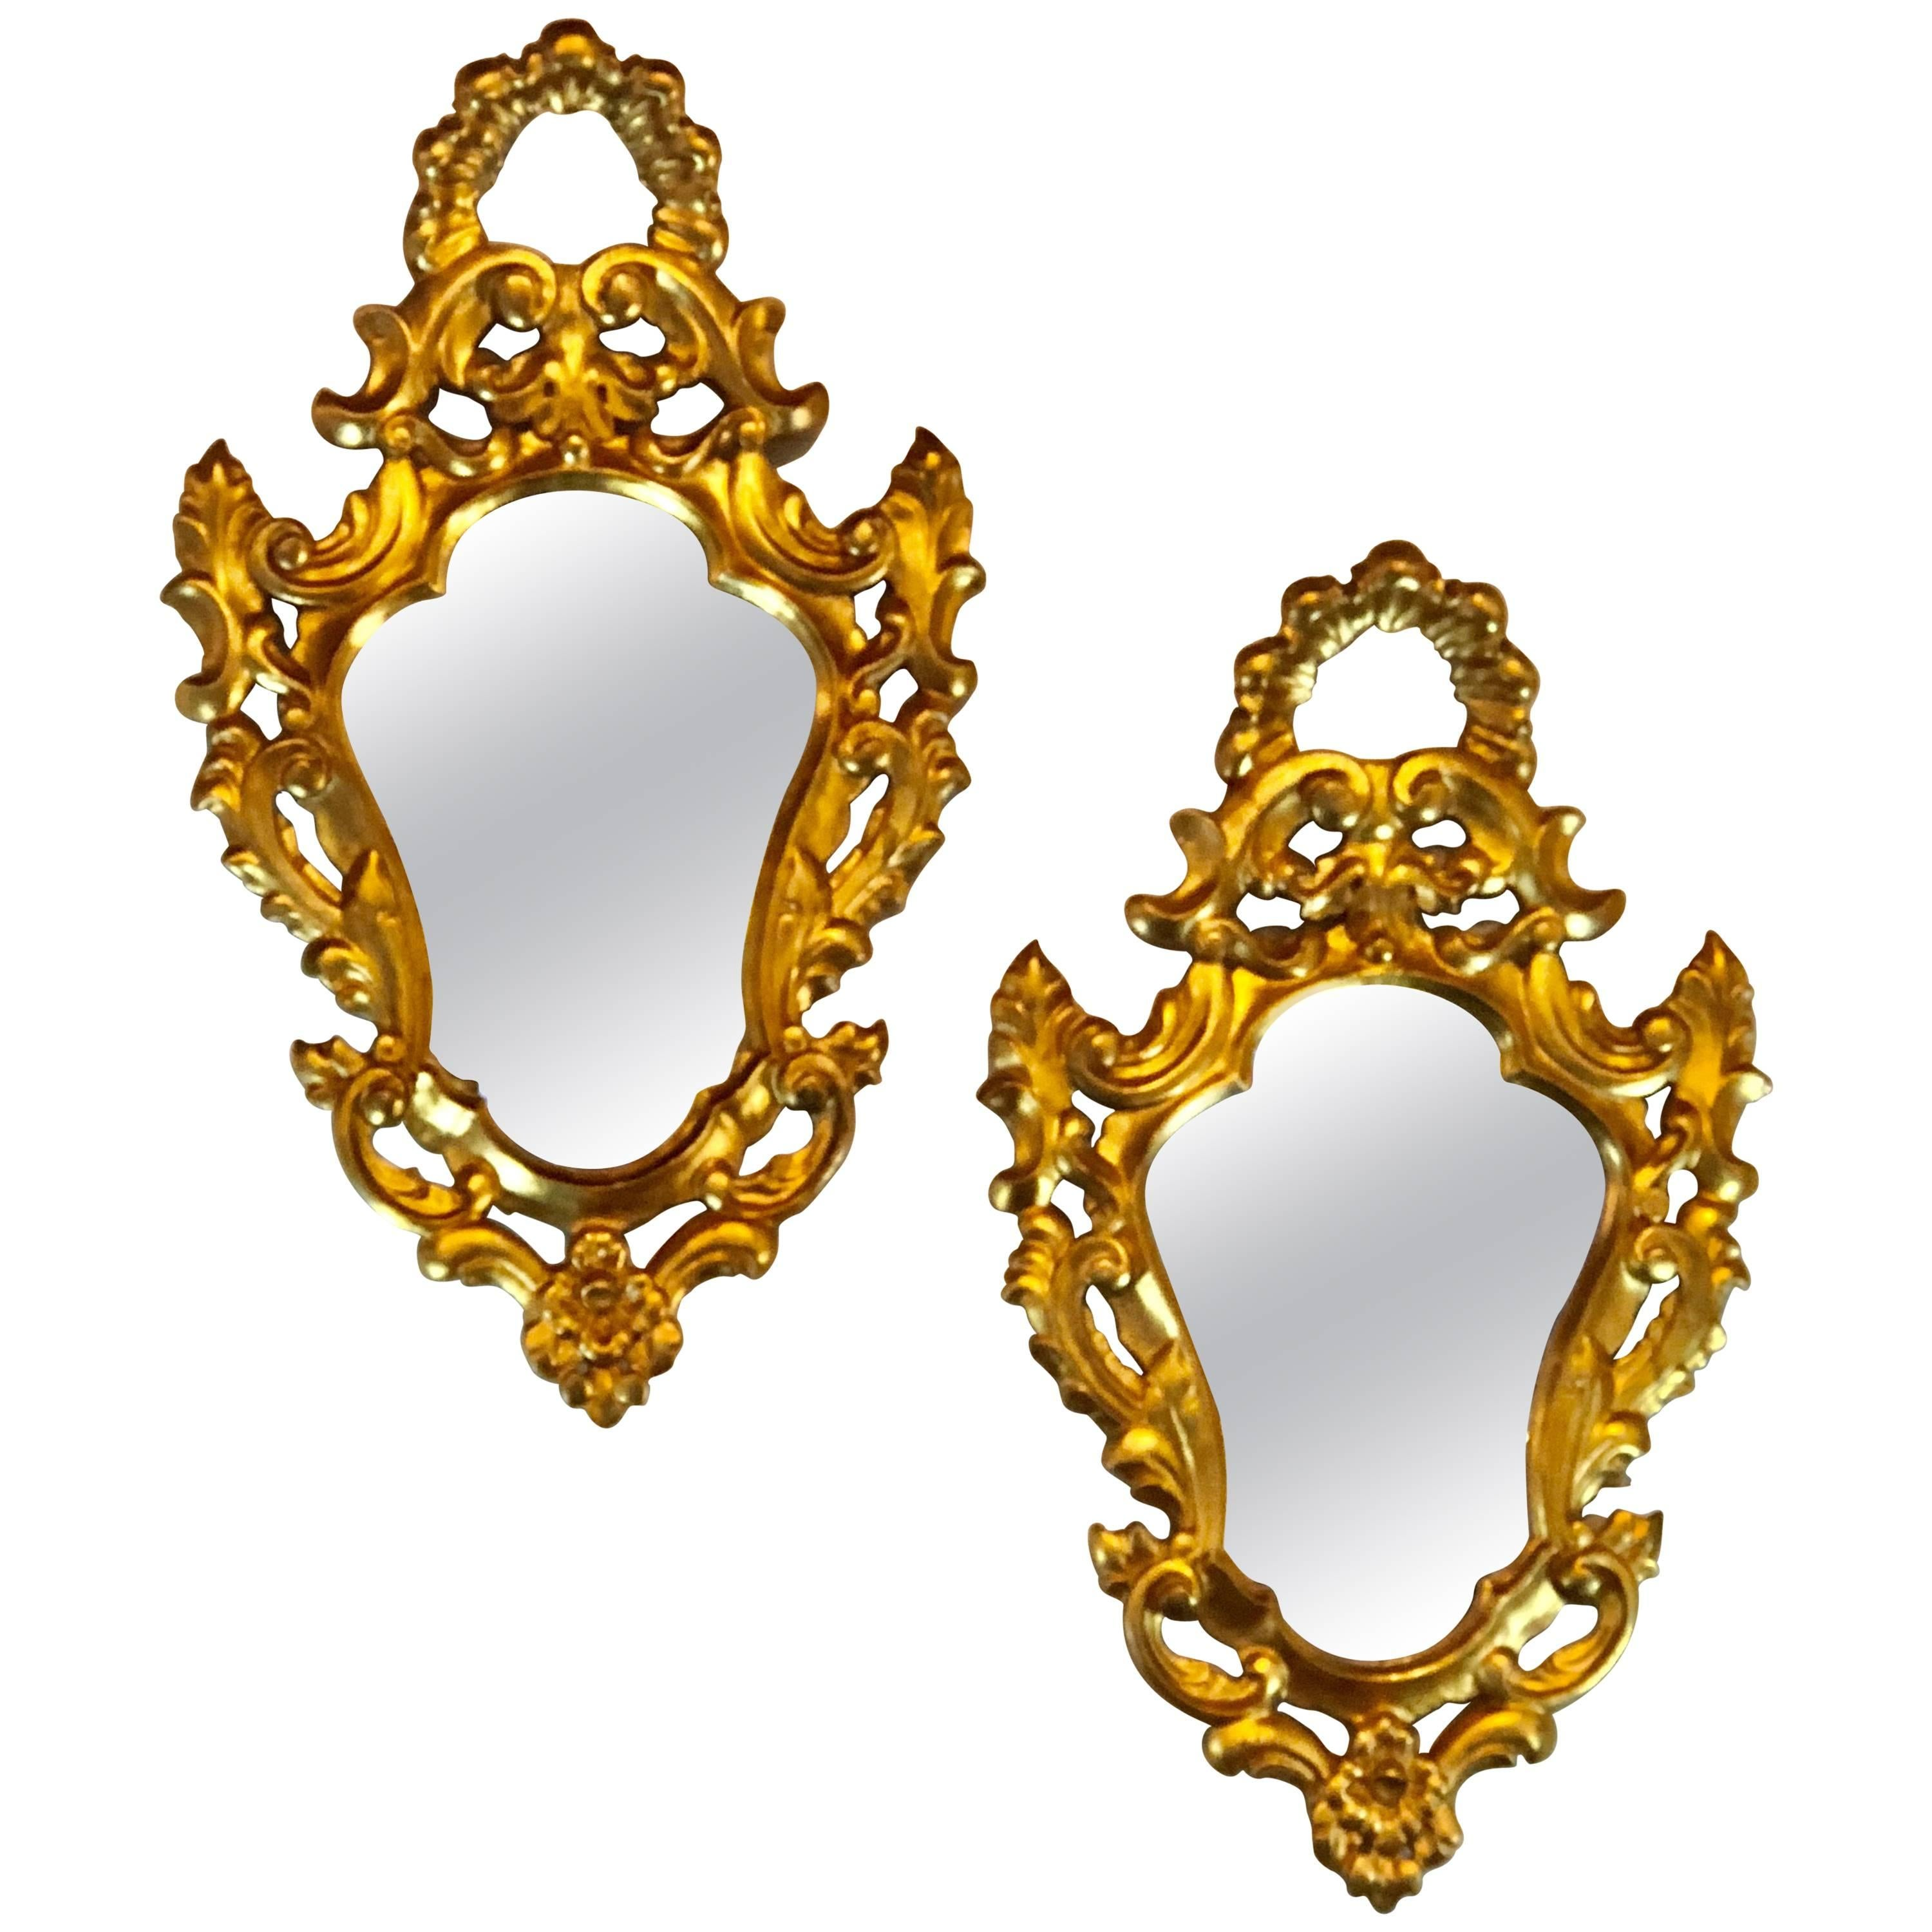 Pair of Small Giltwood Italian Rococo Style Wall Mirrors